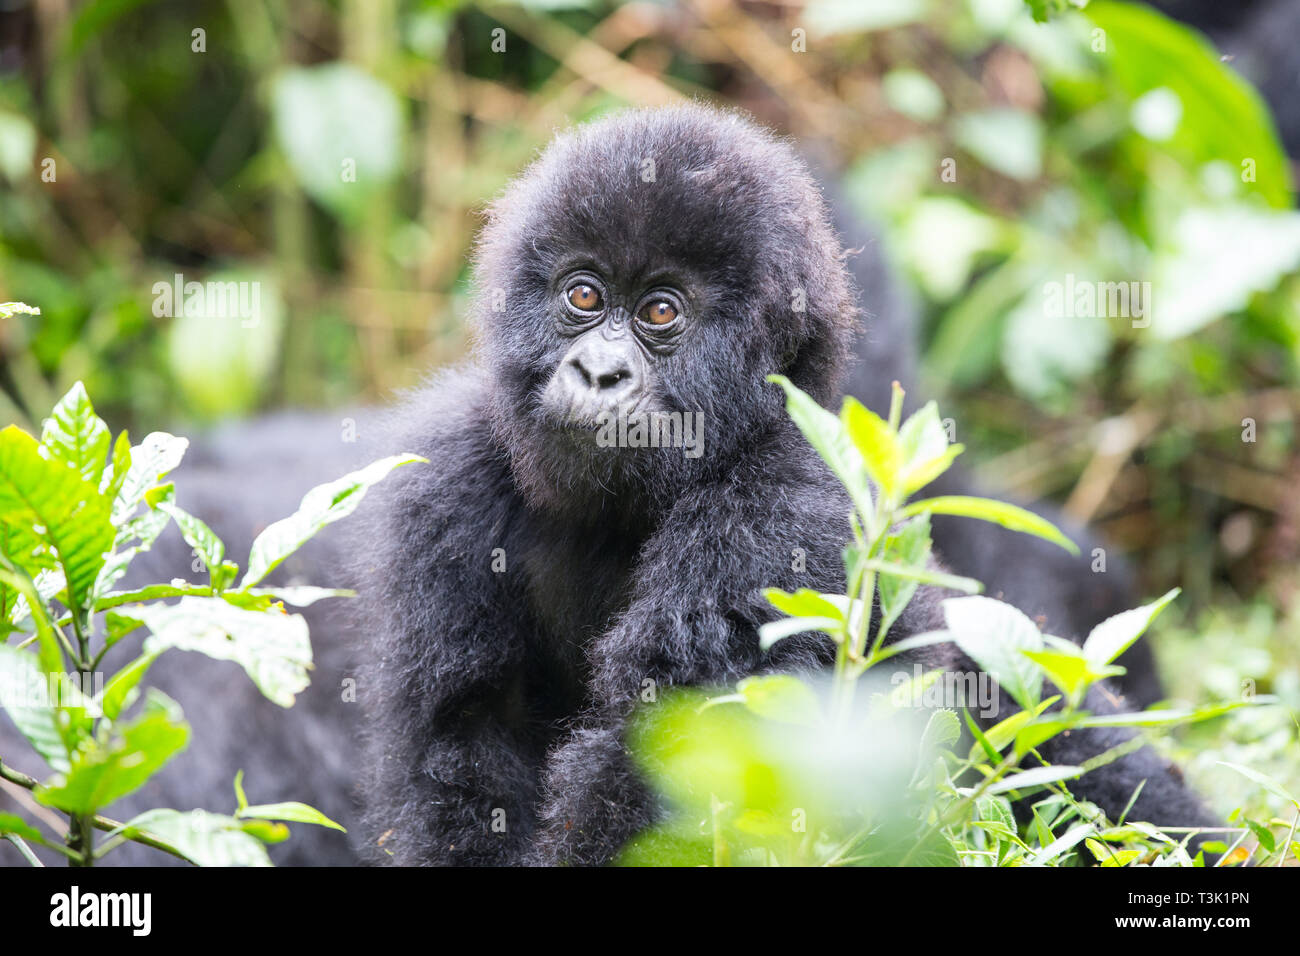 Baby Mountain Gorilla being playful in the jungle of Rawanda - Stock Image